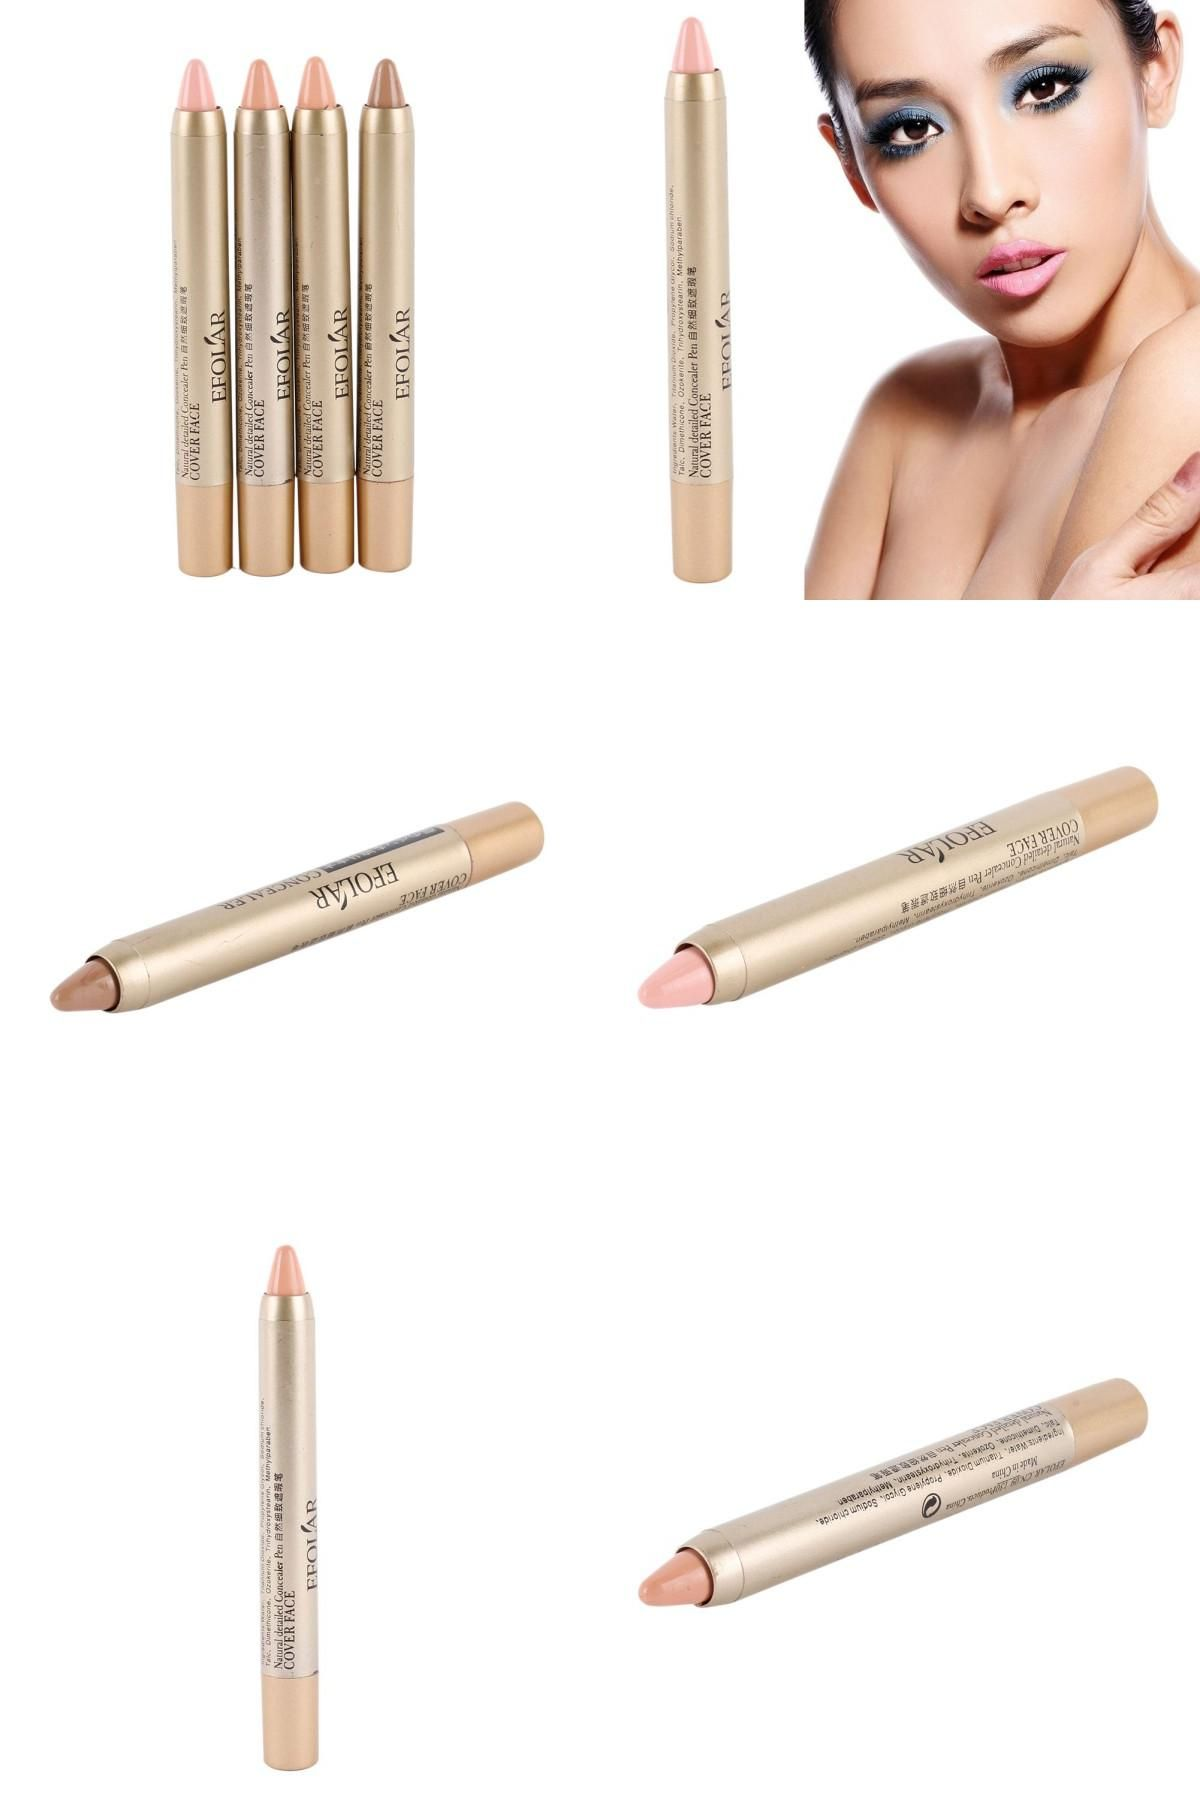 Forum on this topic: How to Buy Concealer, how-to-buy-concealer/